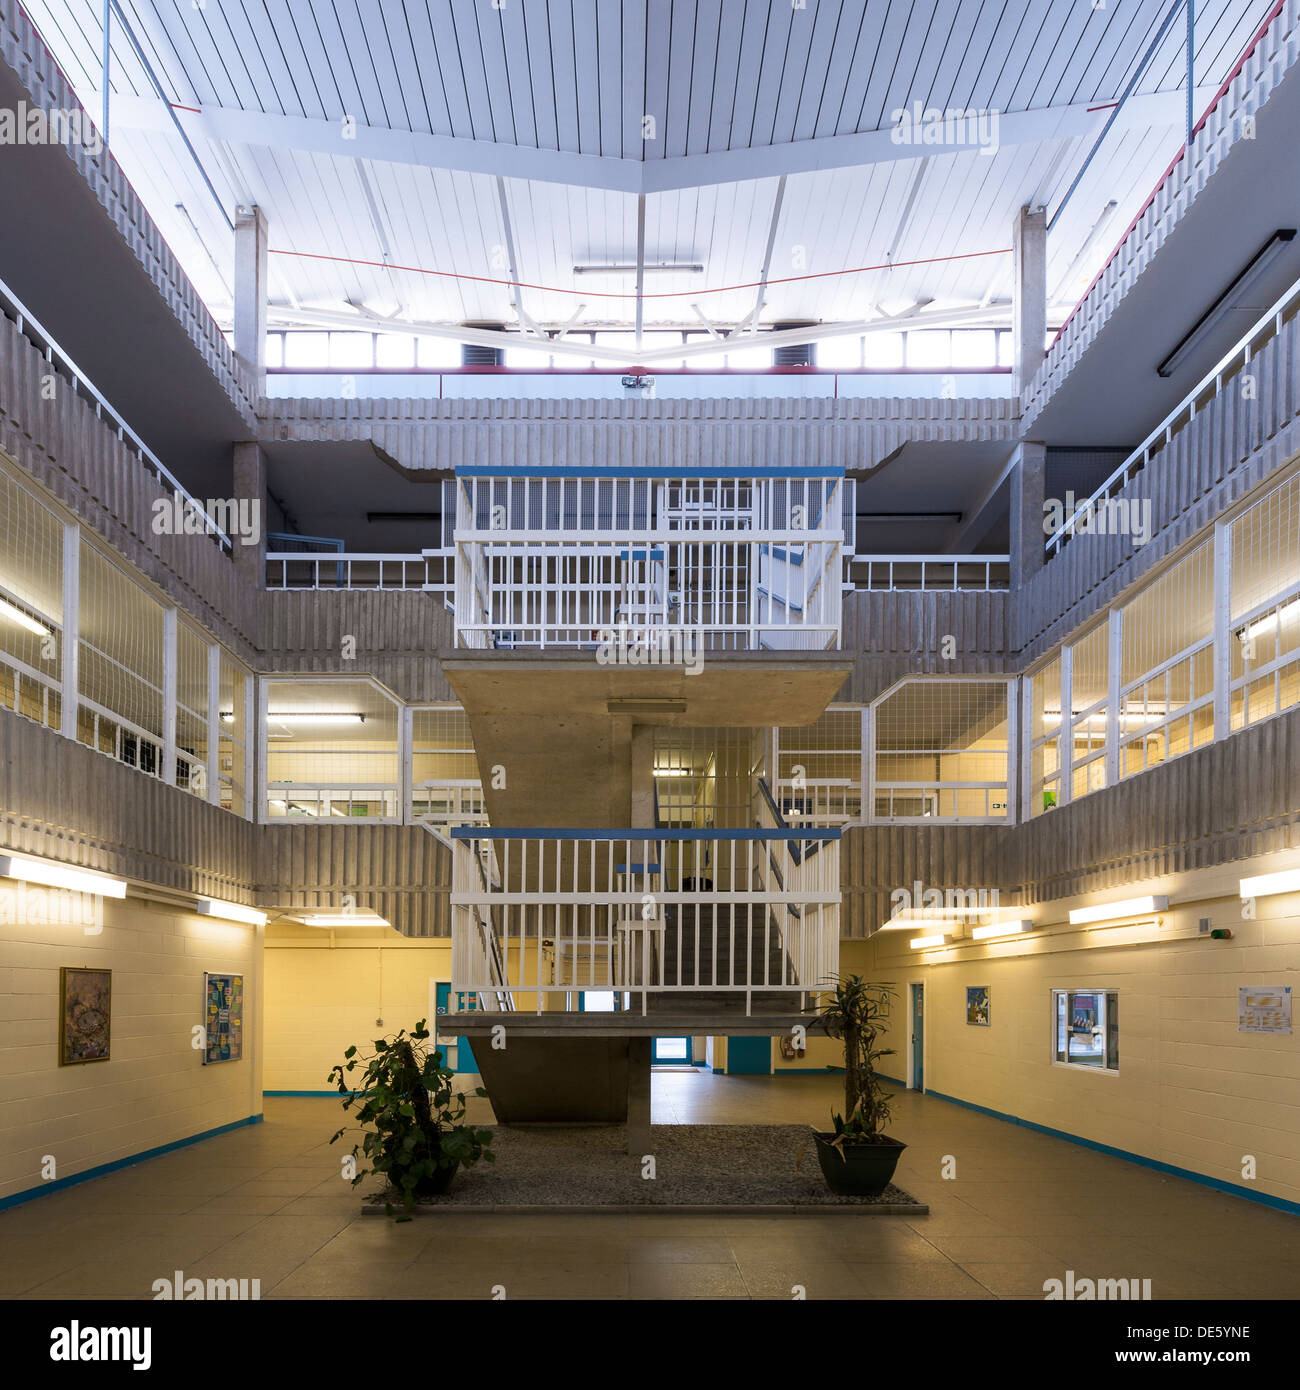 The interior of an activities building within one of Her Majesty's Prisons in Lancashire in the UK. - Stock Image